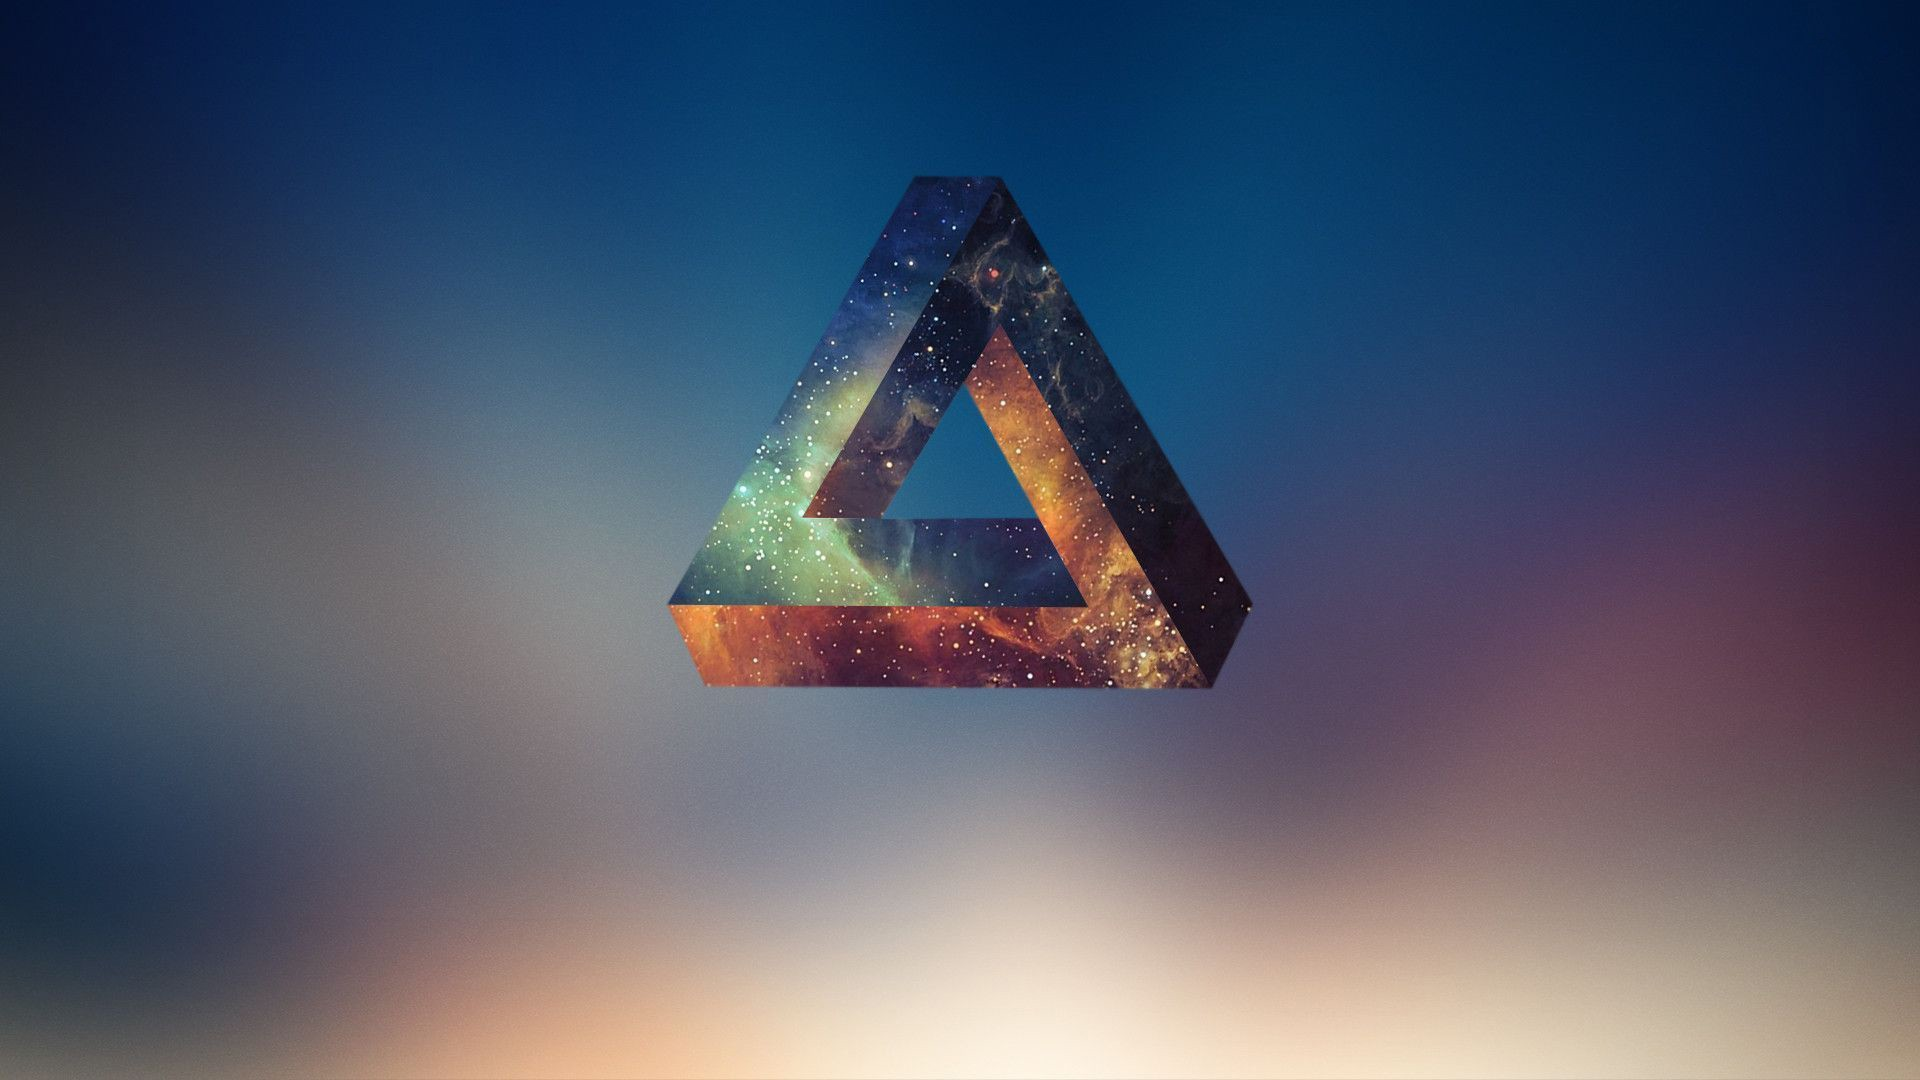 Wallpaper Illusion 3d Penrose Triangle Geometry Abstract Wallpaper 117492